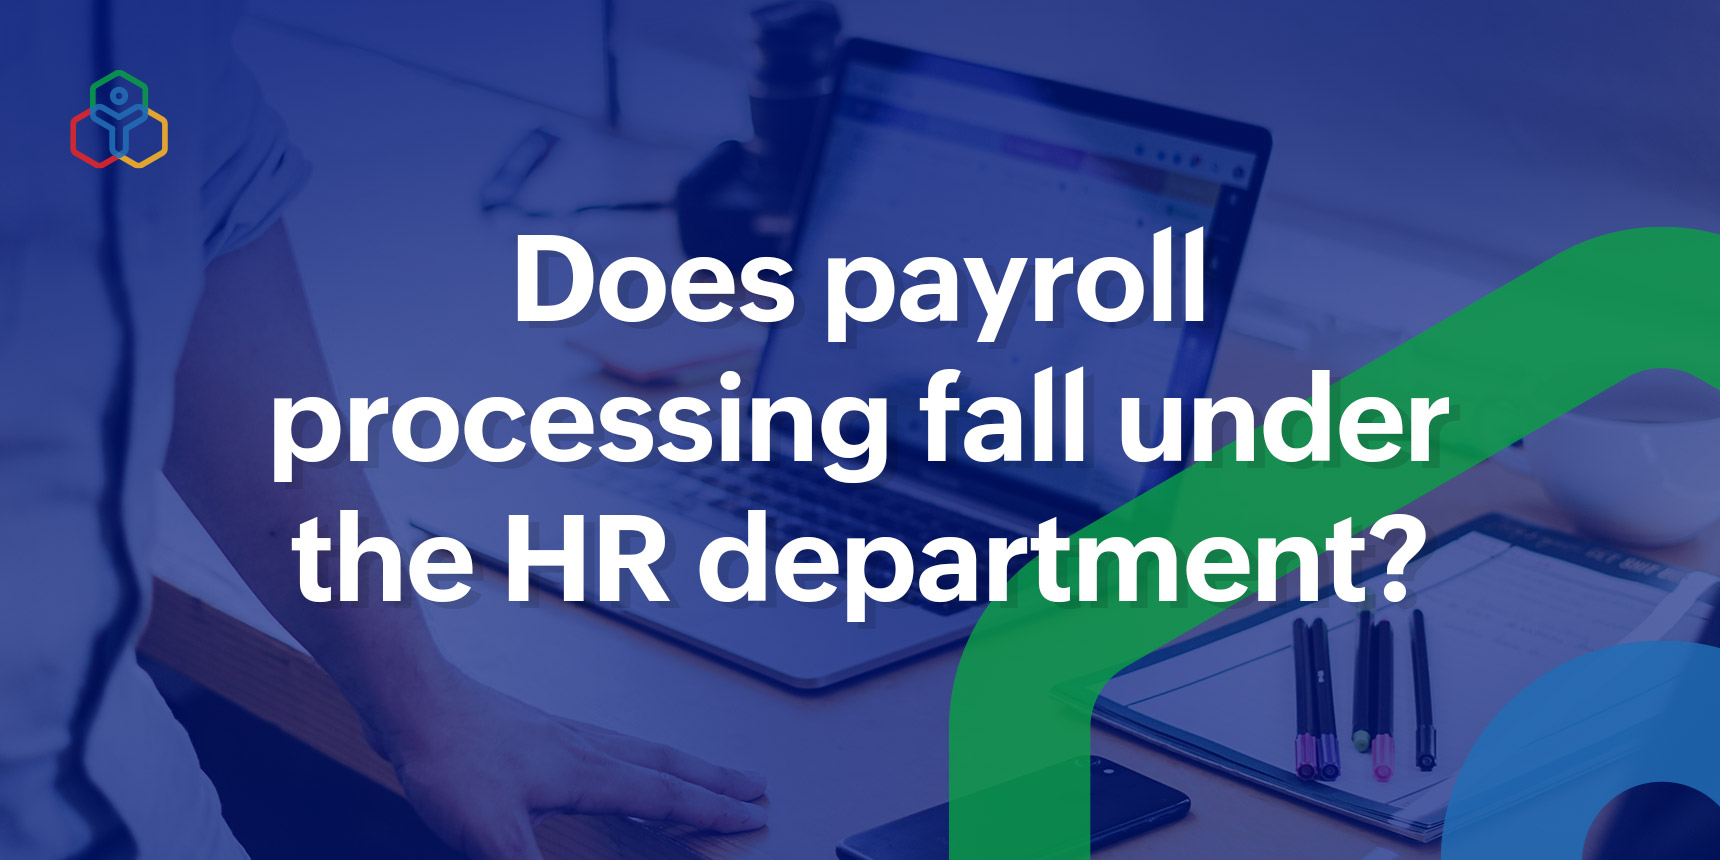 Is Payroll part of HR?